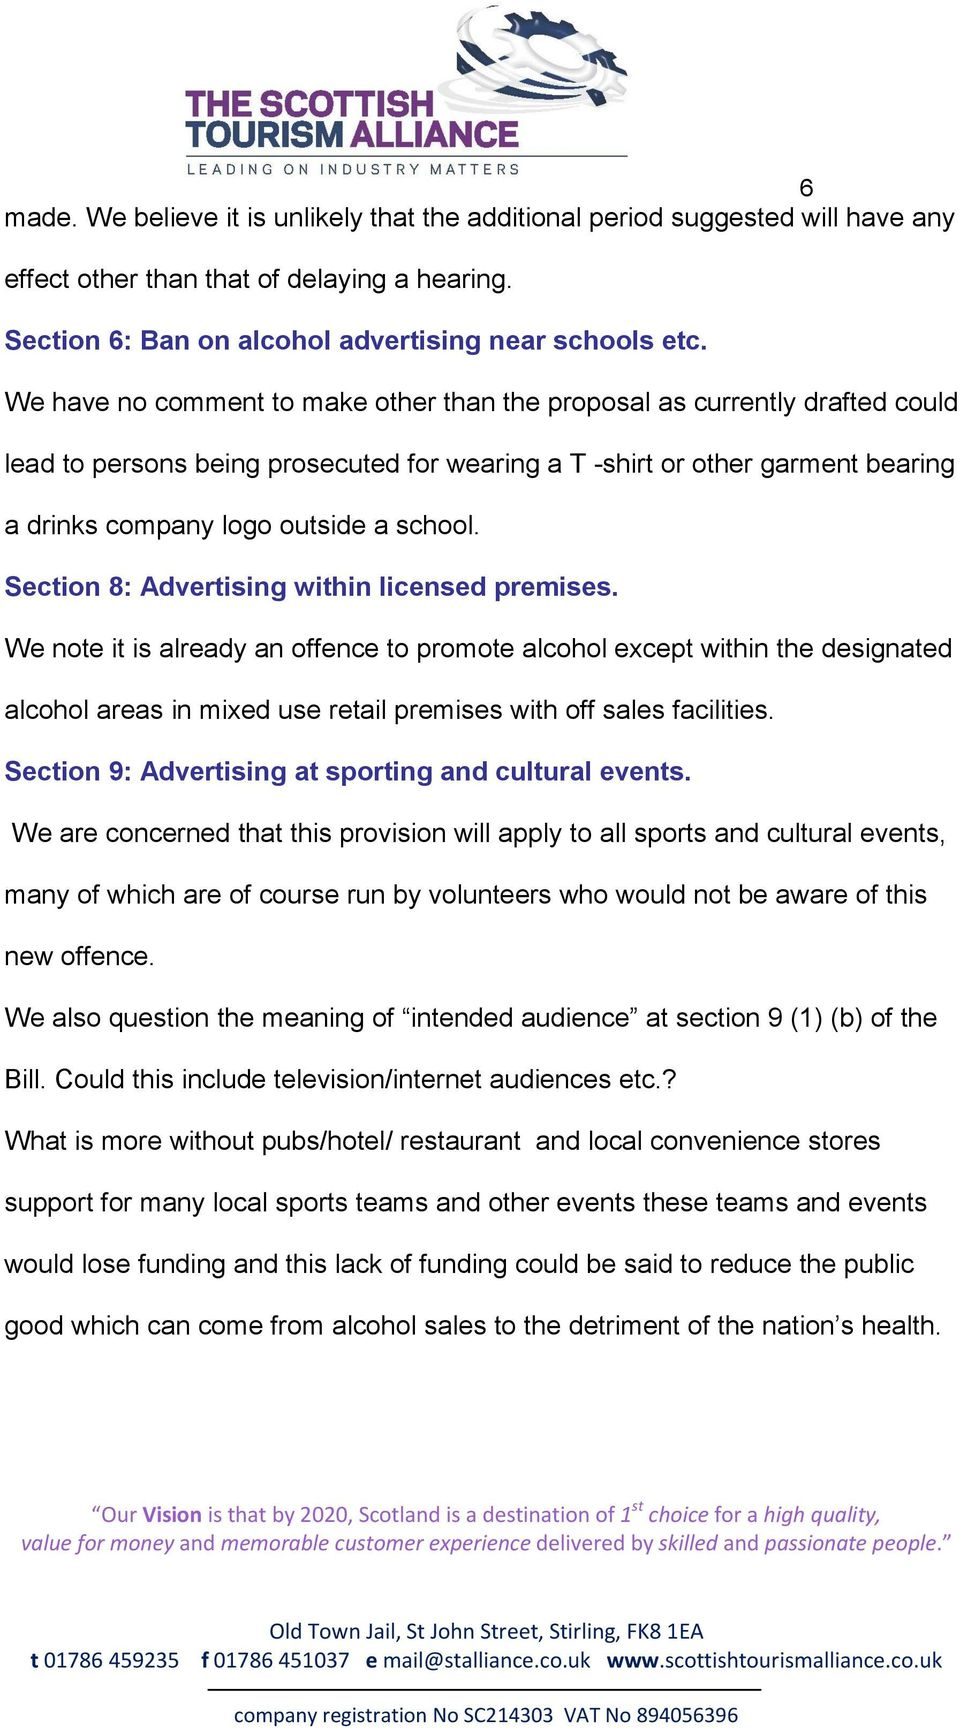 Section 8: Advertising within licensed premises. We note it is already an offence to promote alcohol except within the designated alcohol areas in mixed use retail premises with off sales facilities.